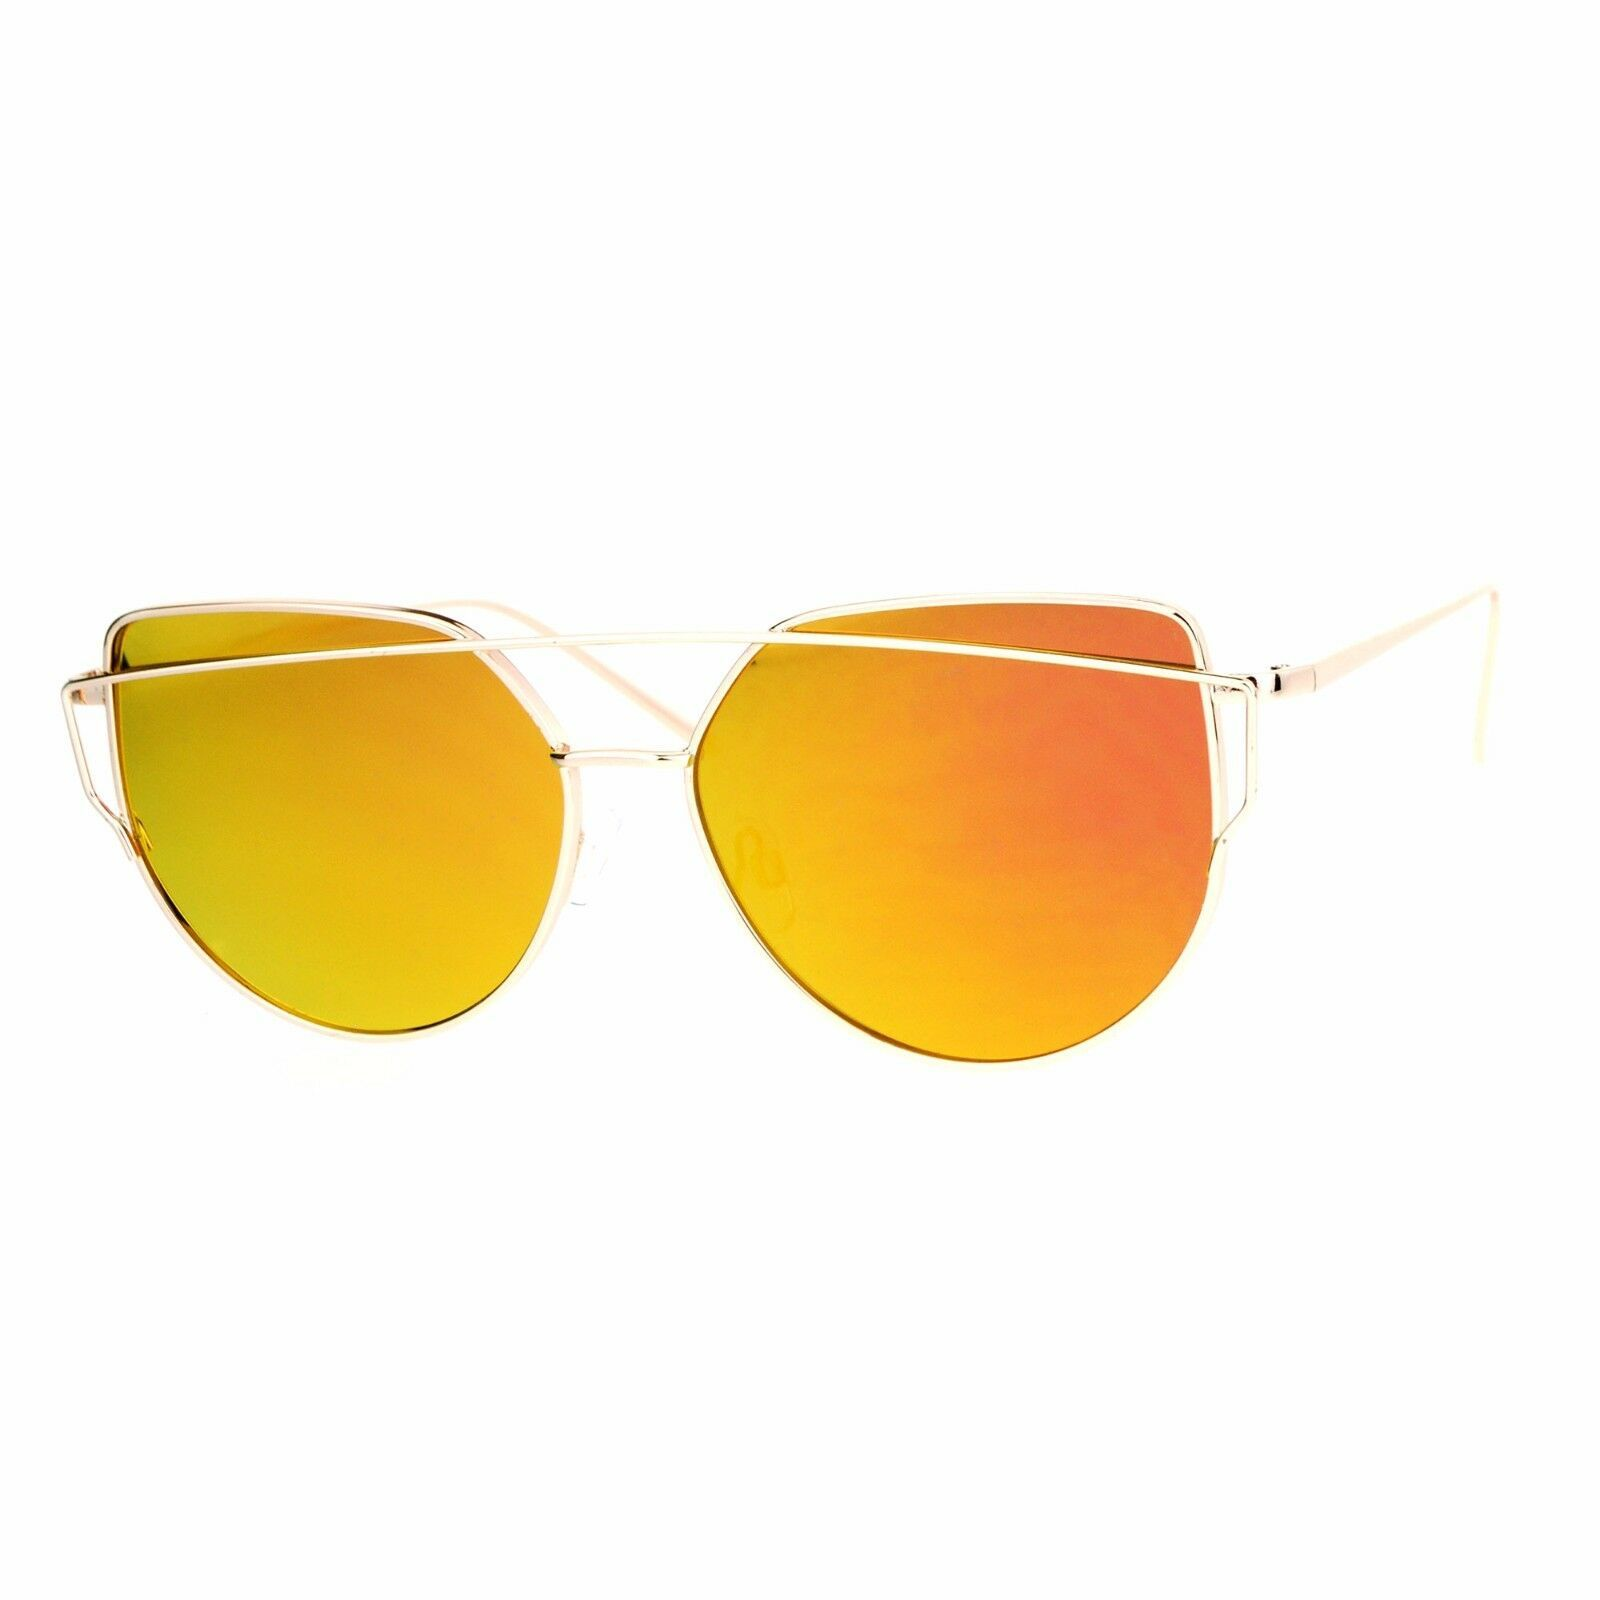 Retro Fashion Sunglasses Womens Half Round Wire Top Metal Frame UV 400